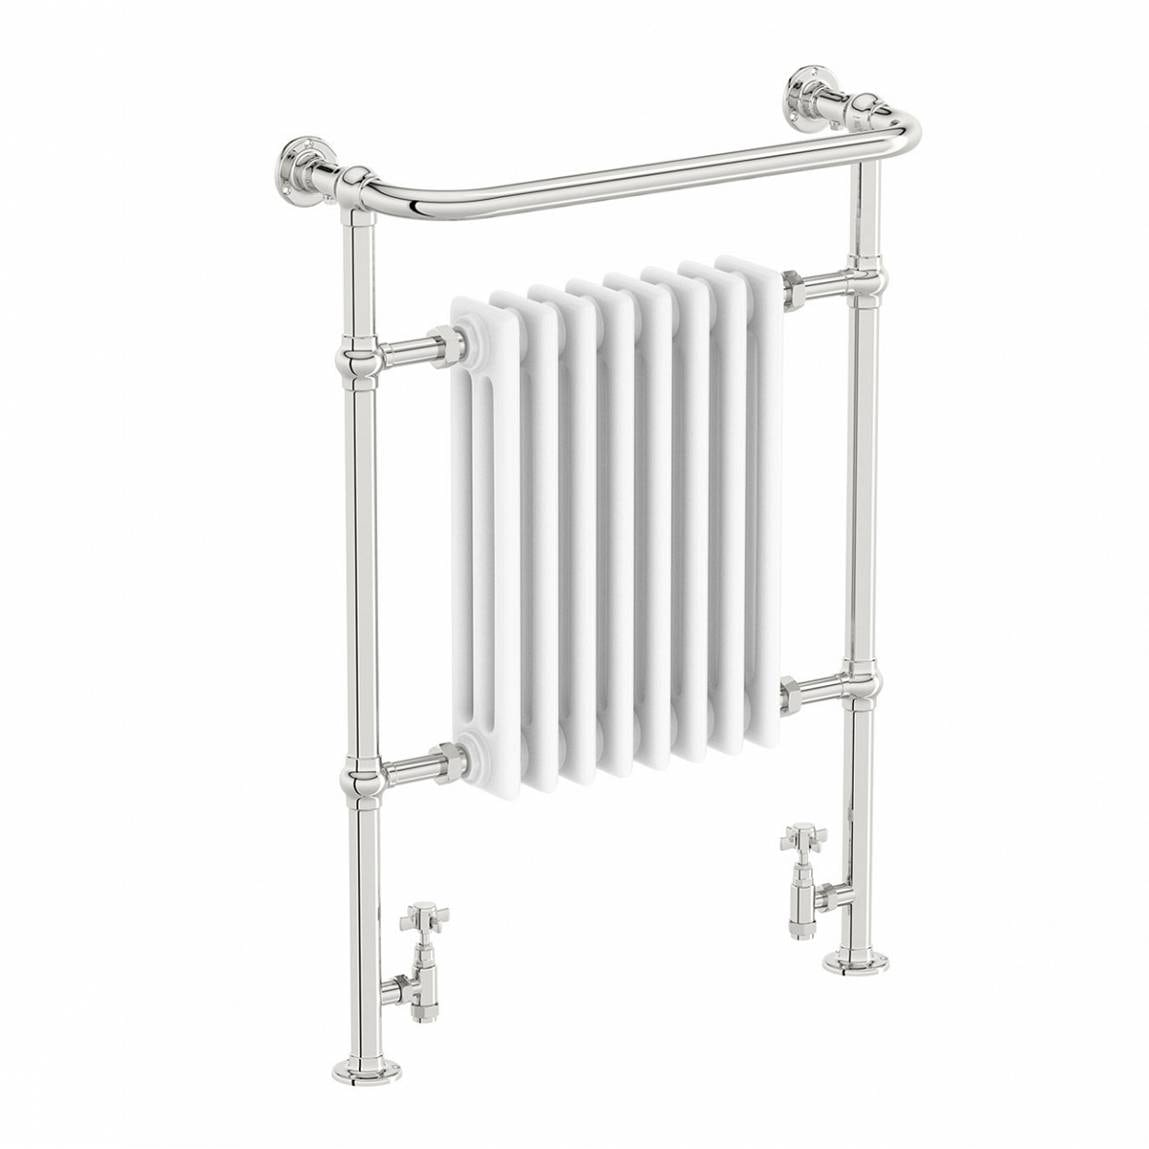 Image of Elizabeth traditional radiator 952 x 659